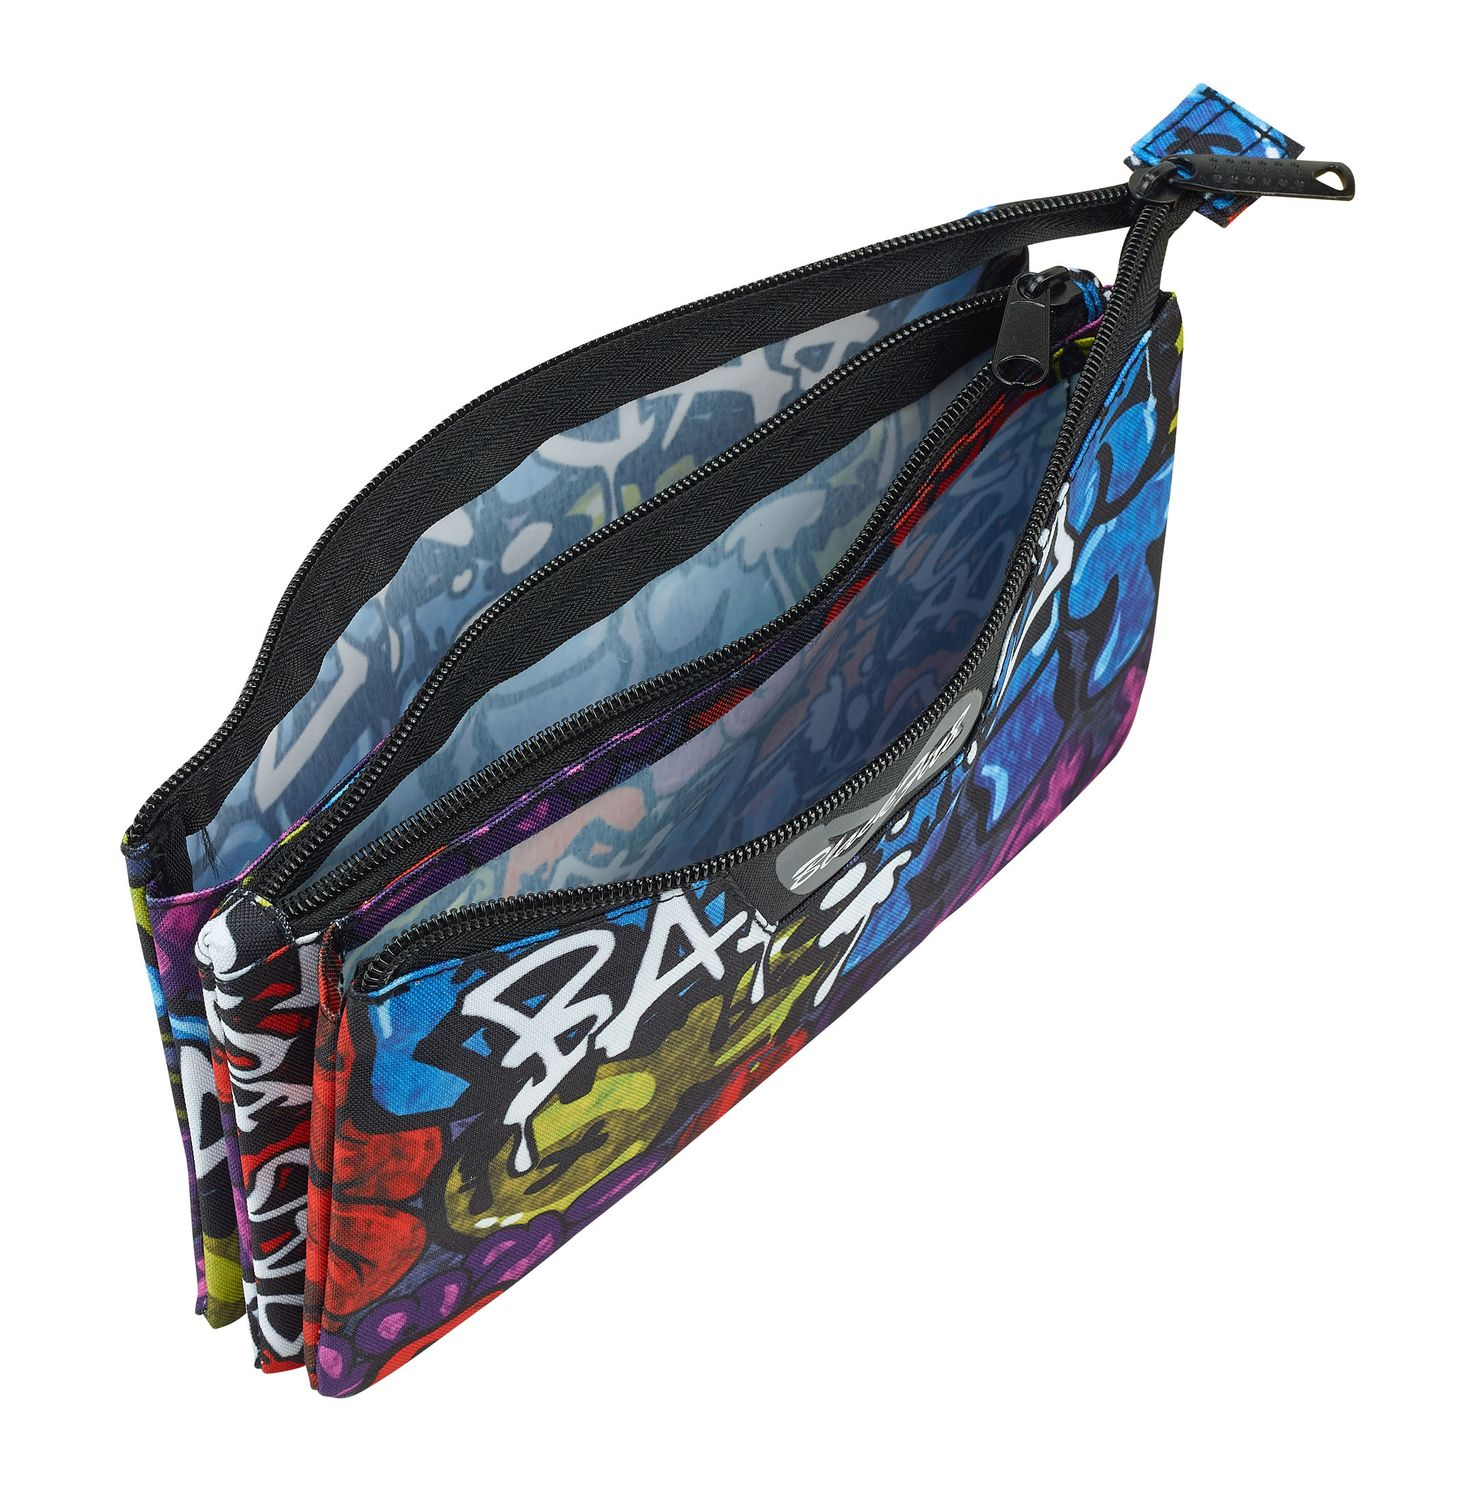 Blackfit Bad Boy Triple pencil case  – image 2